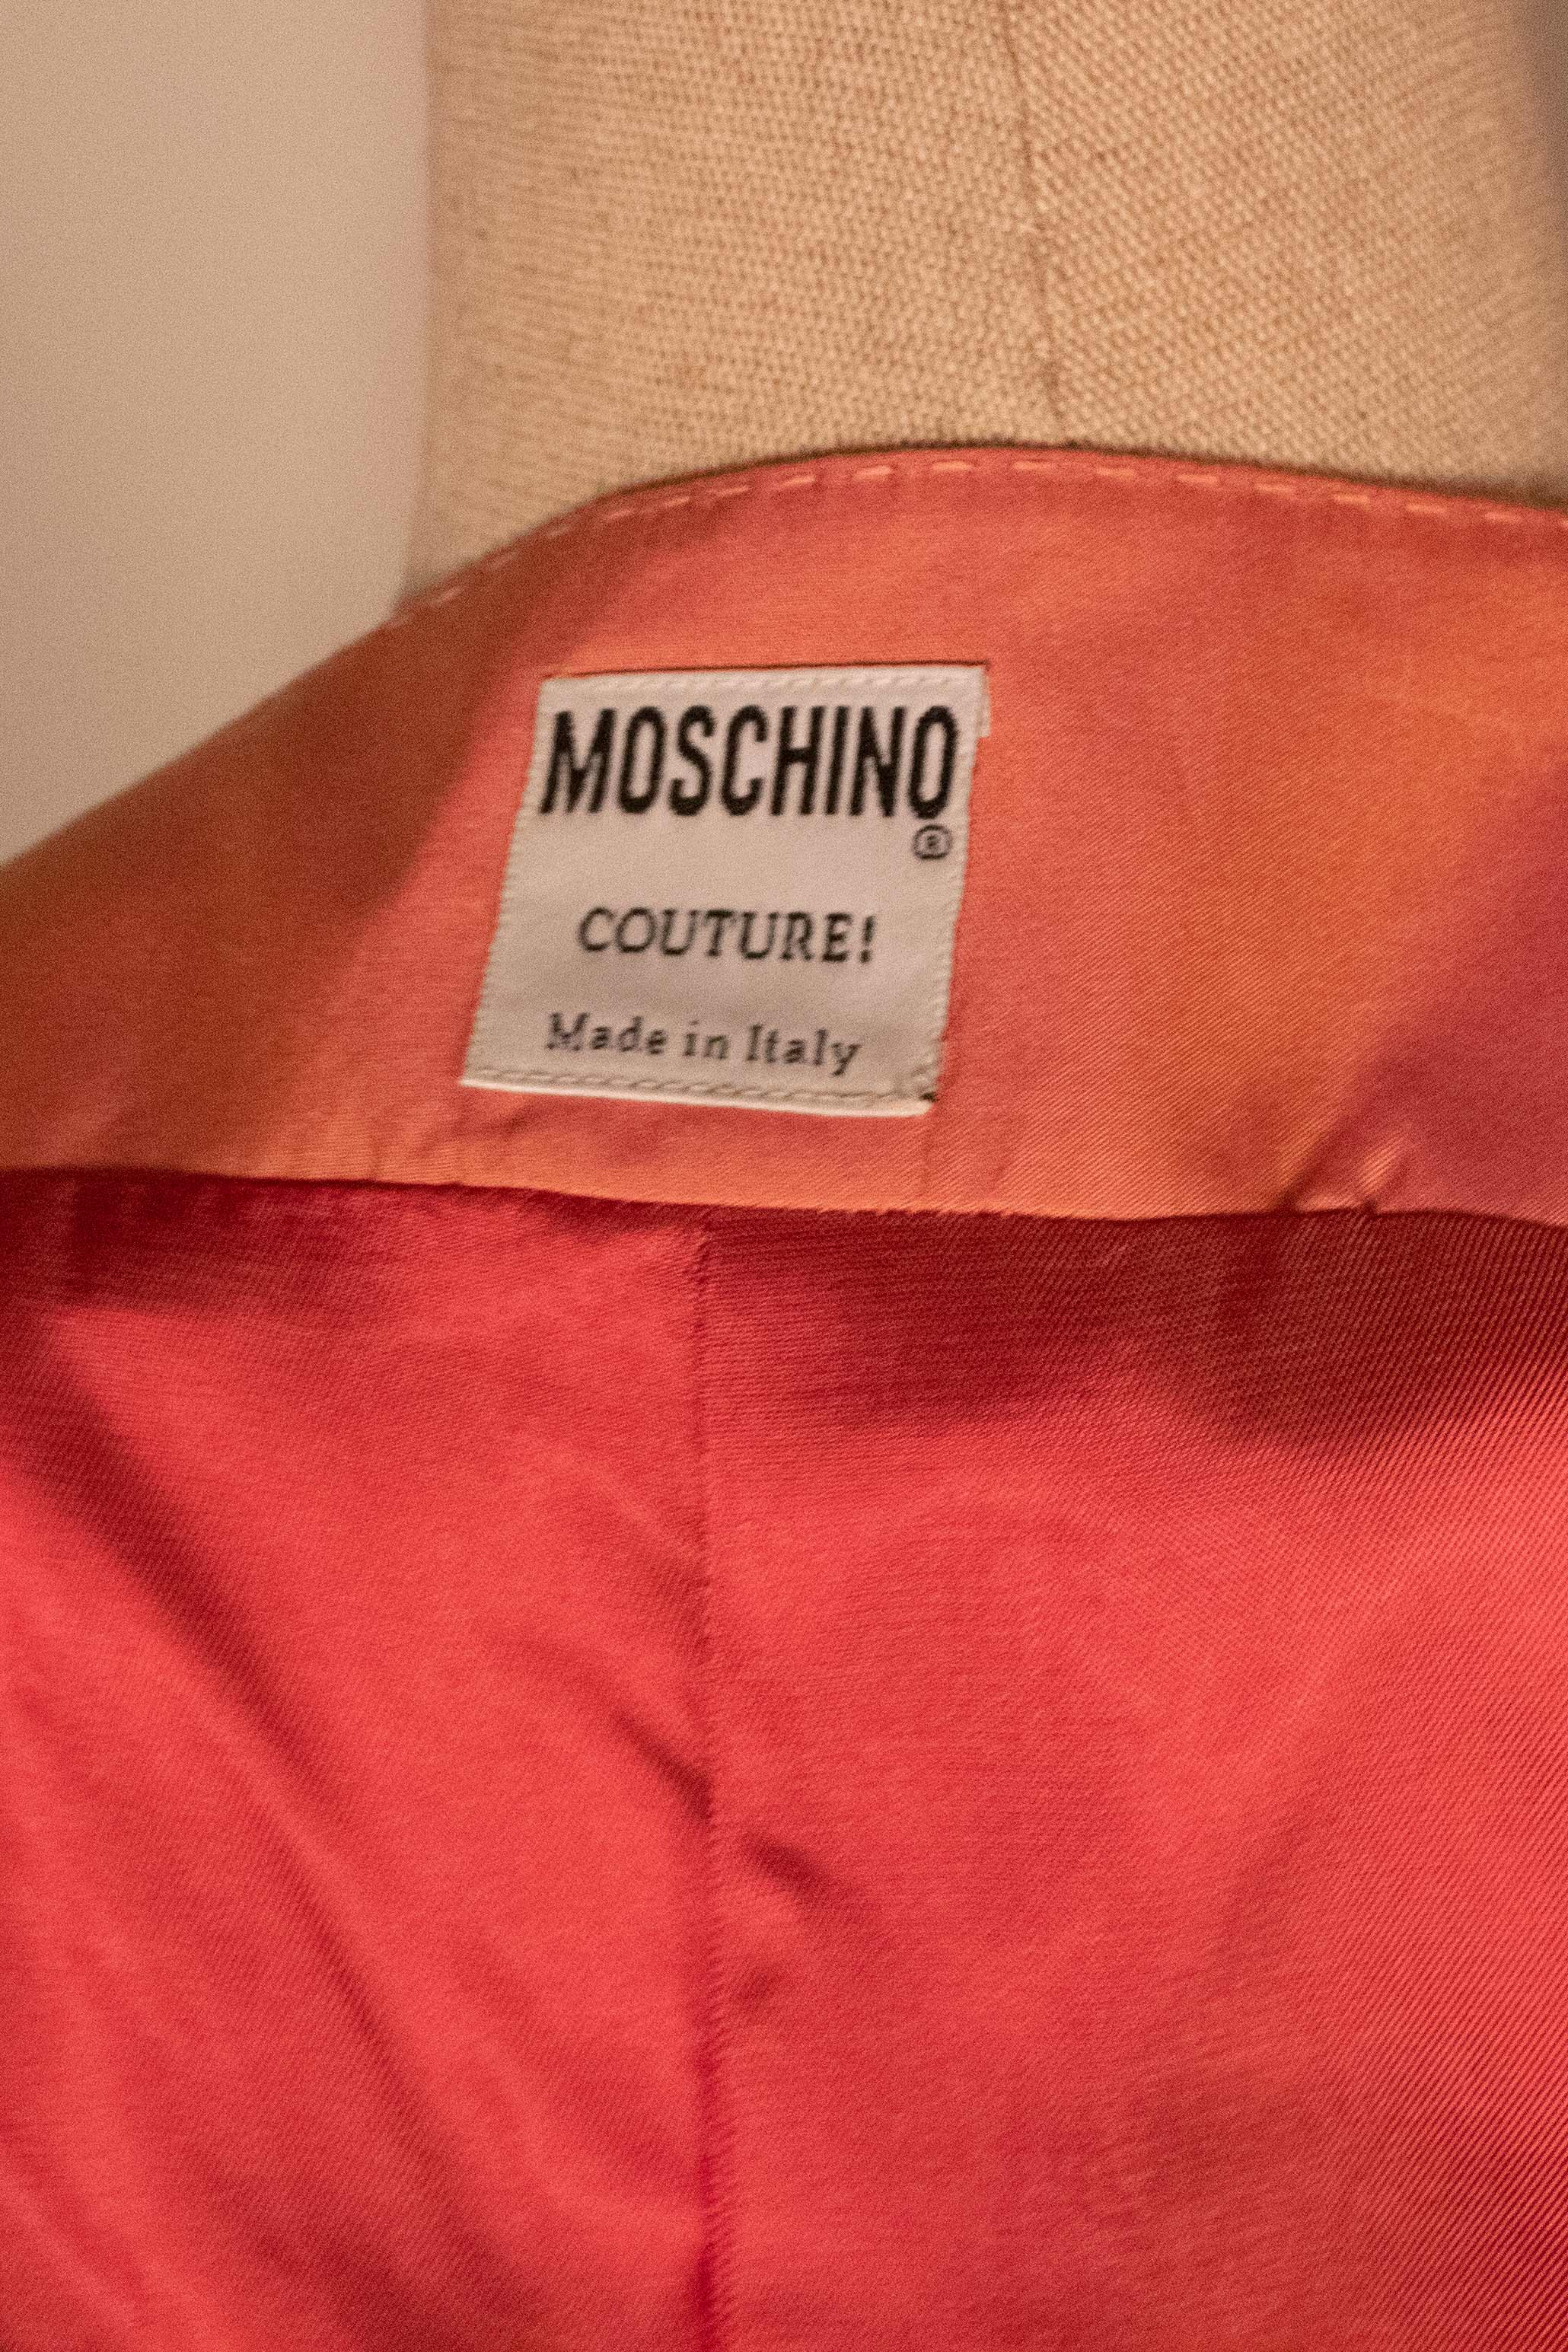 Moschino peach silk fitted vest